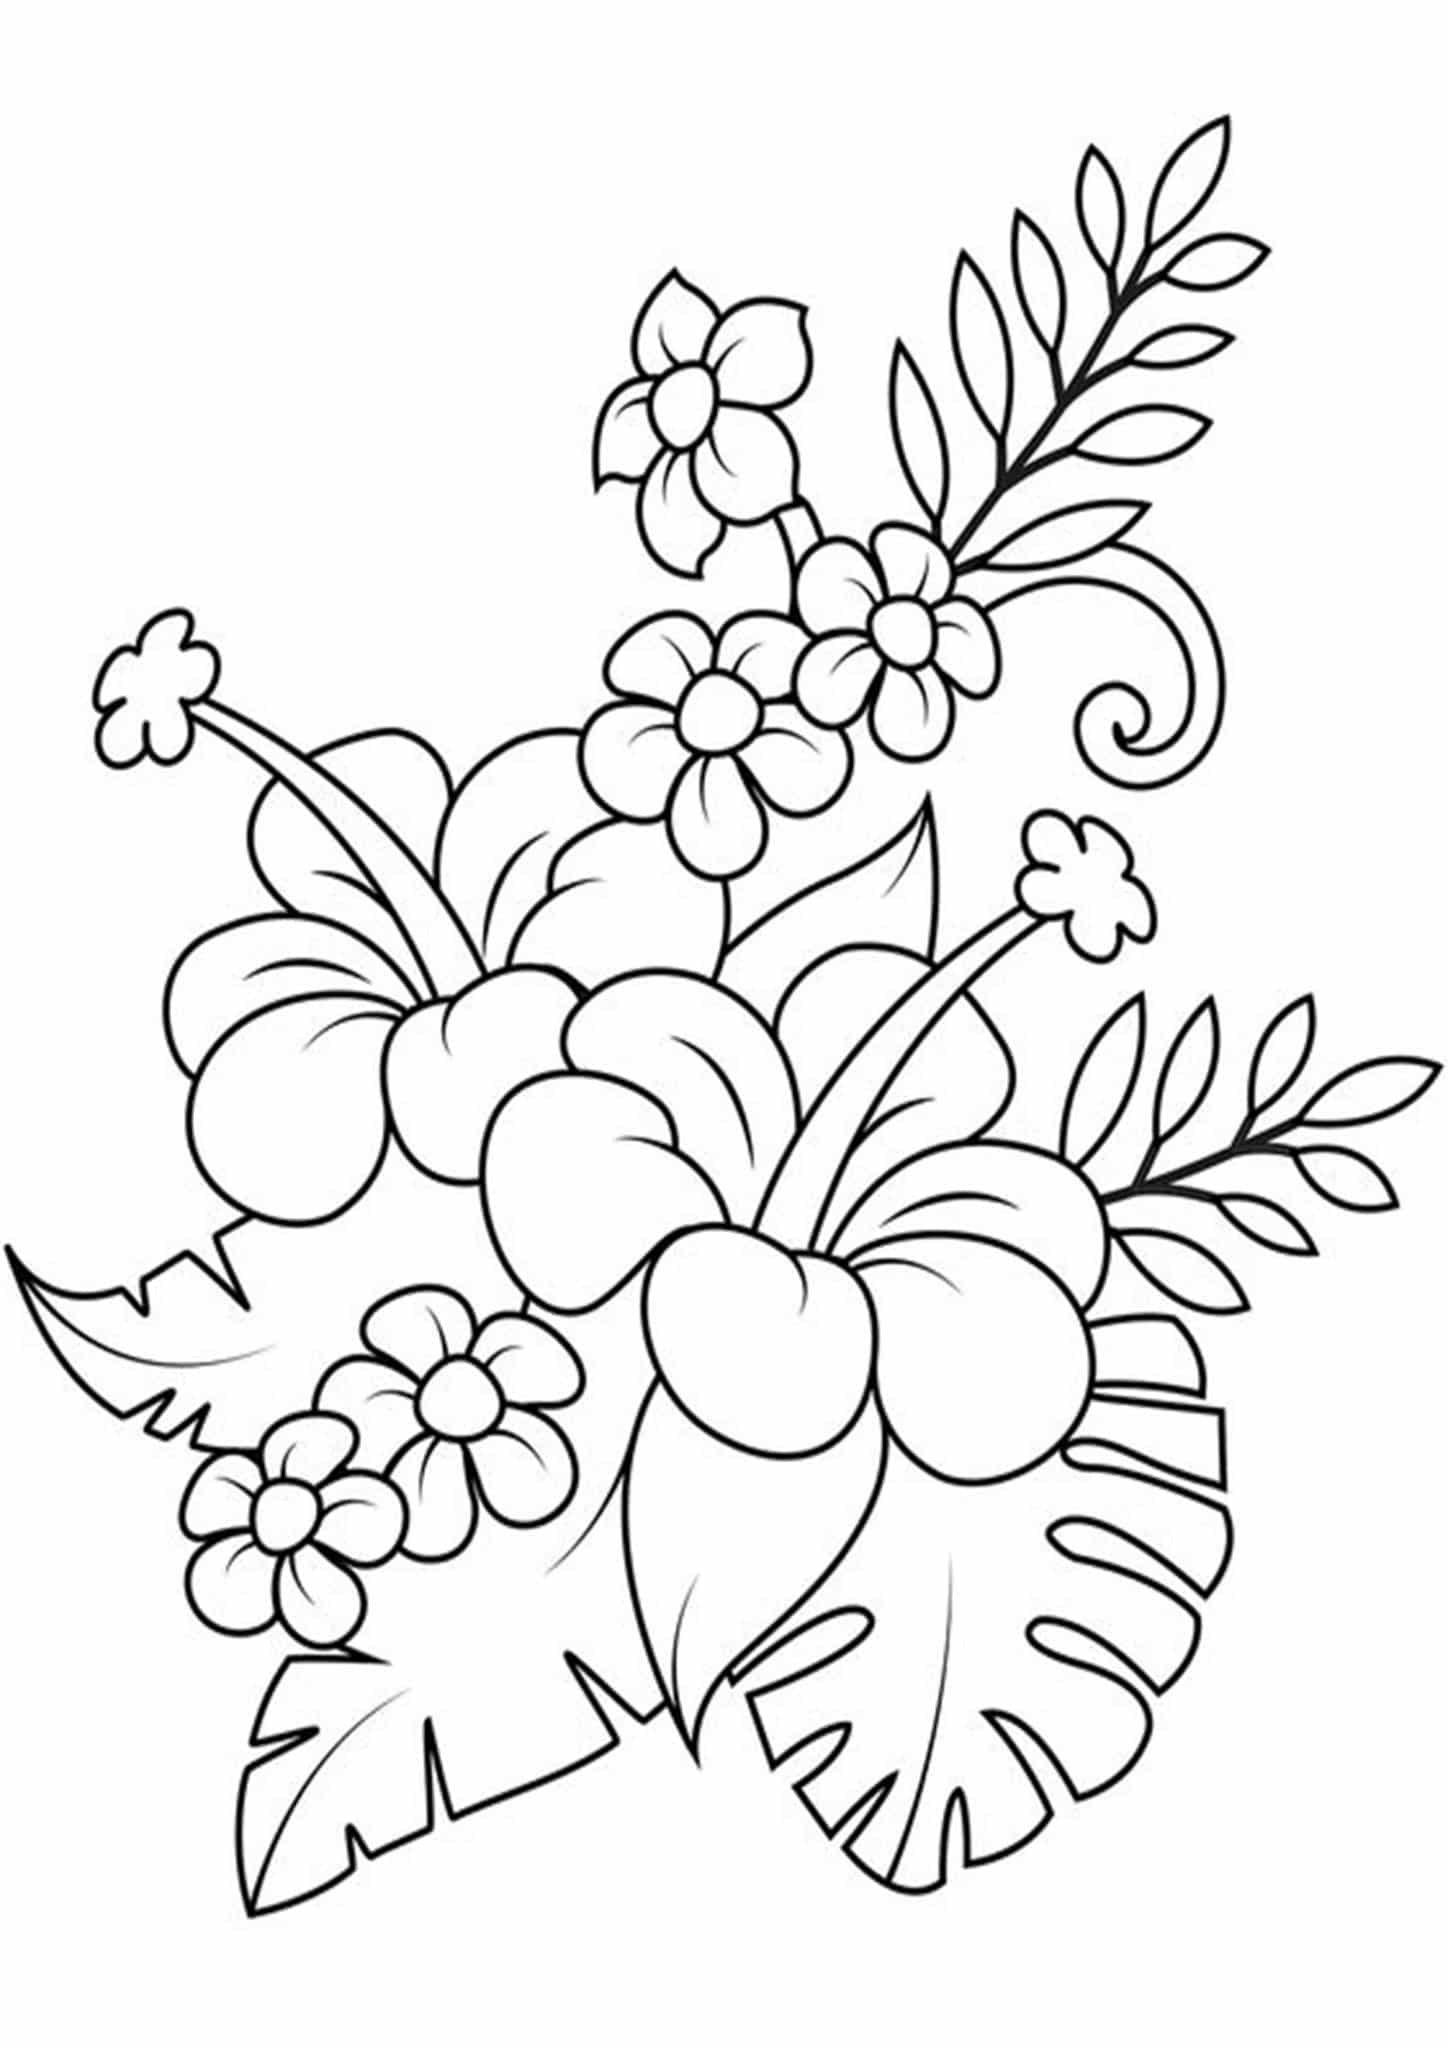 flower coloring pages for kids print download some common variations of the flower coloring flower pages for kids